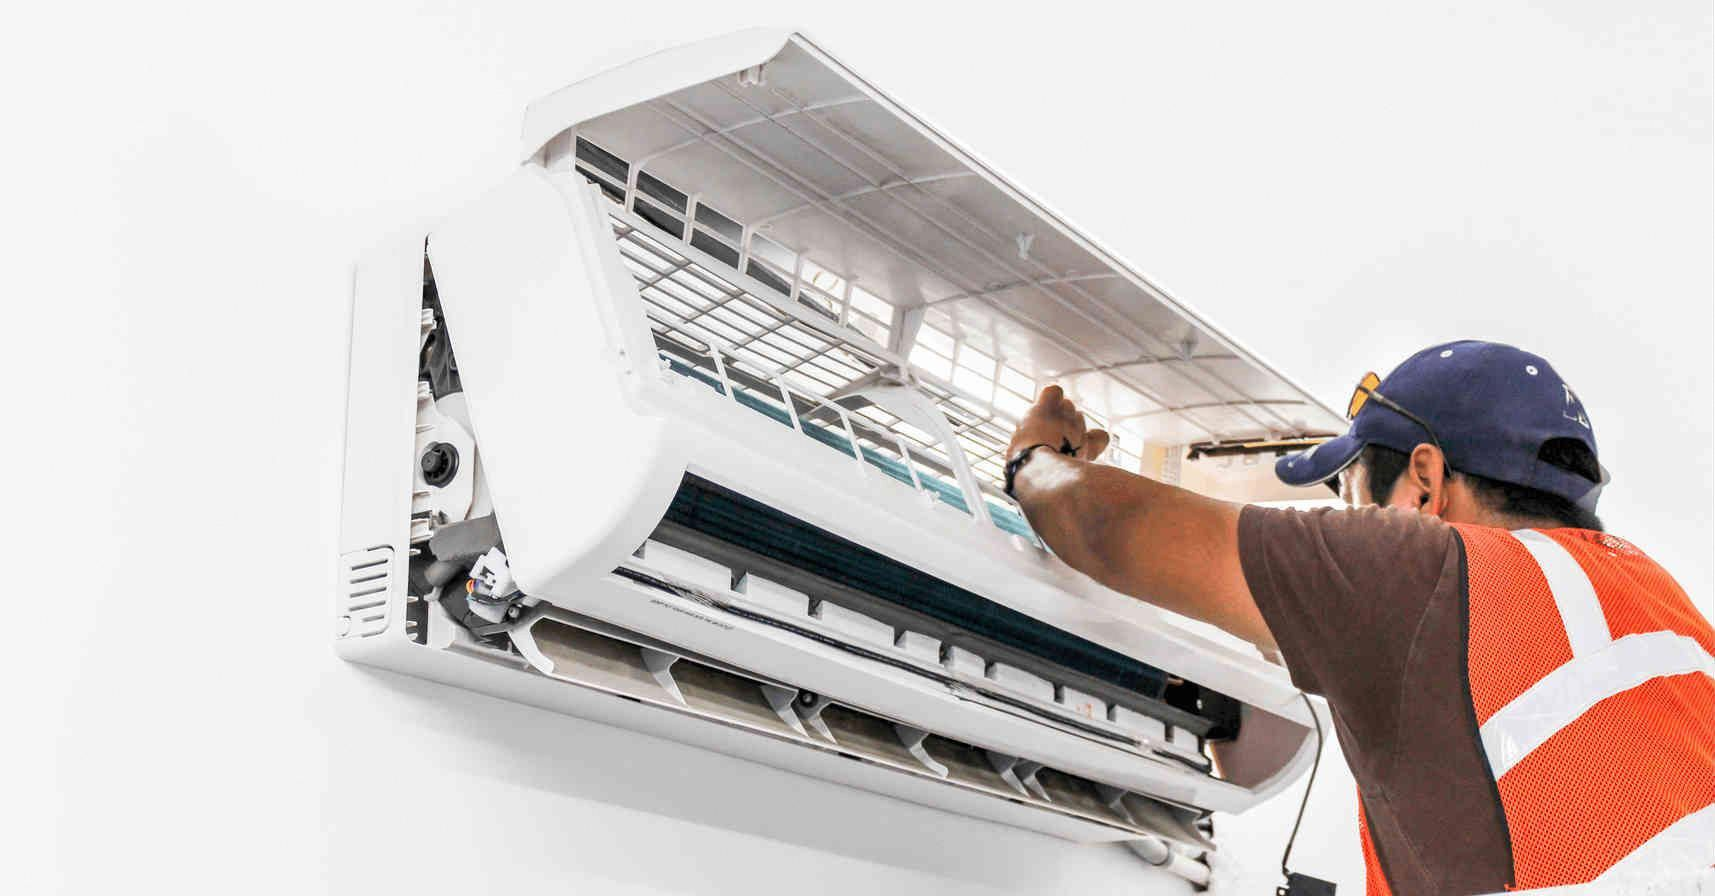 Air Conditioning Servicing At Its Best Air Conditioning Services Air Conditioner Repair Air Conditioner Service